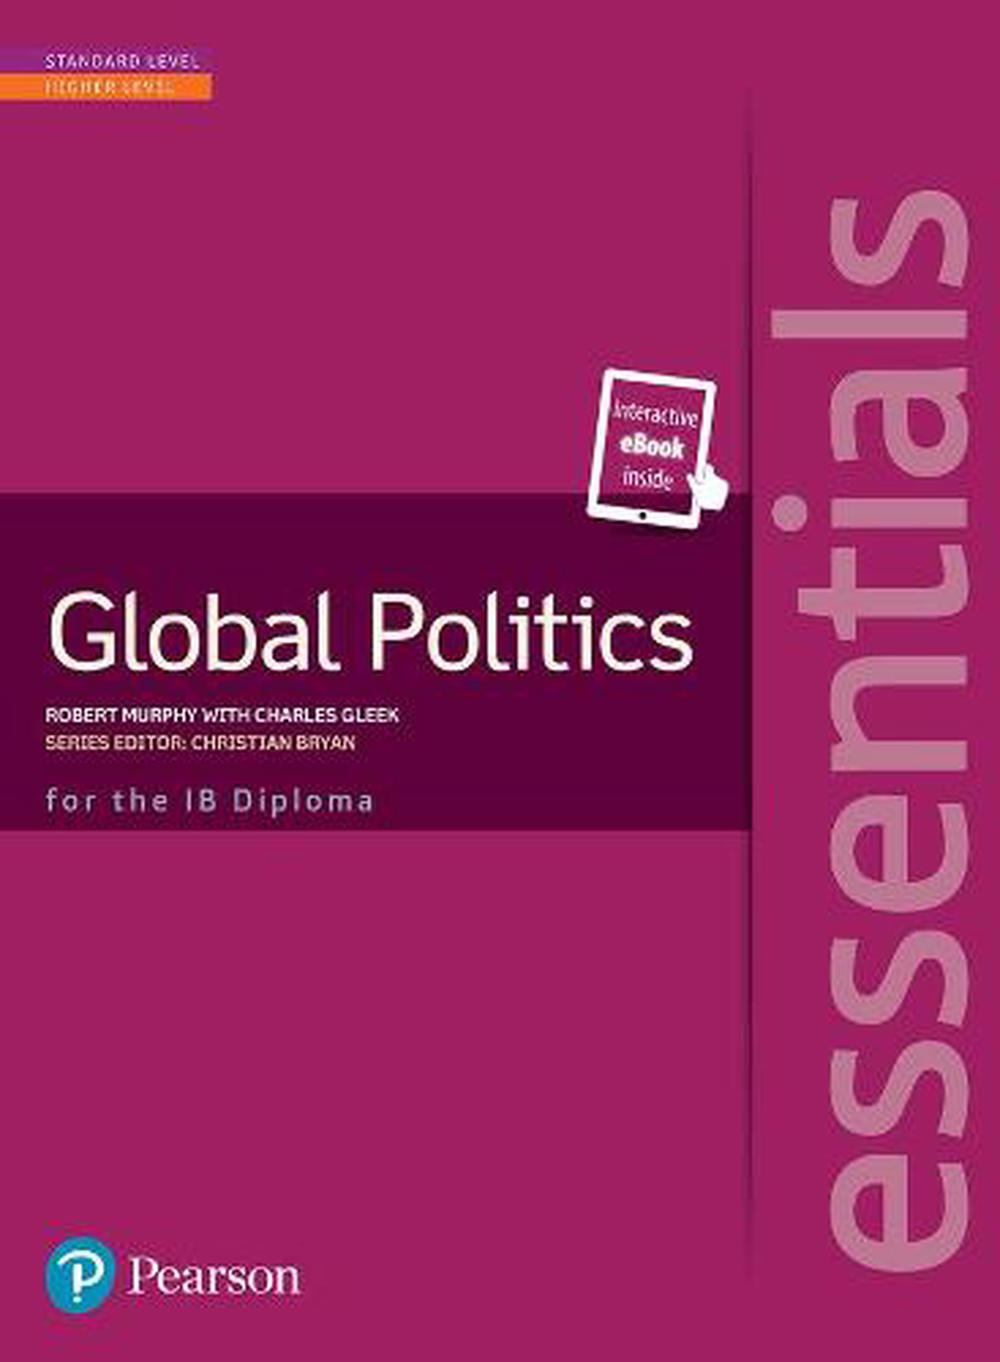 Pearson Baccalaureate Essentials: Global Politics Print and Ebook Bundle